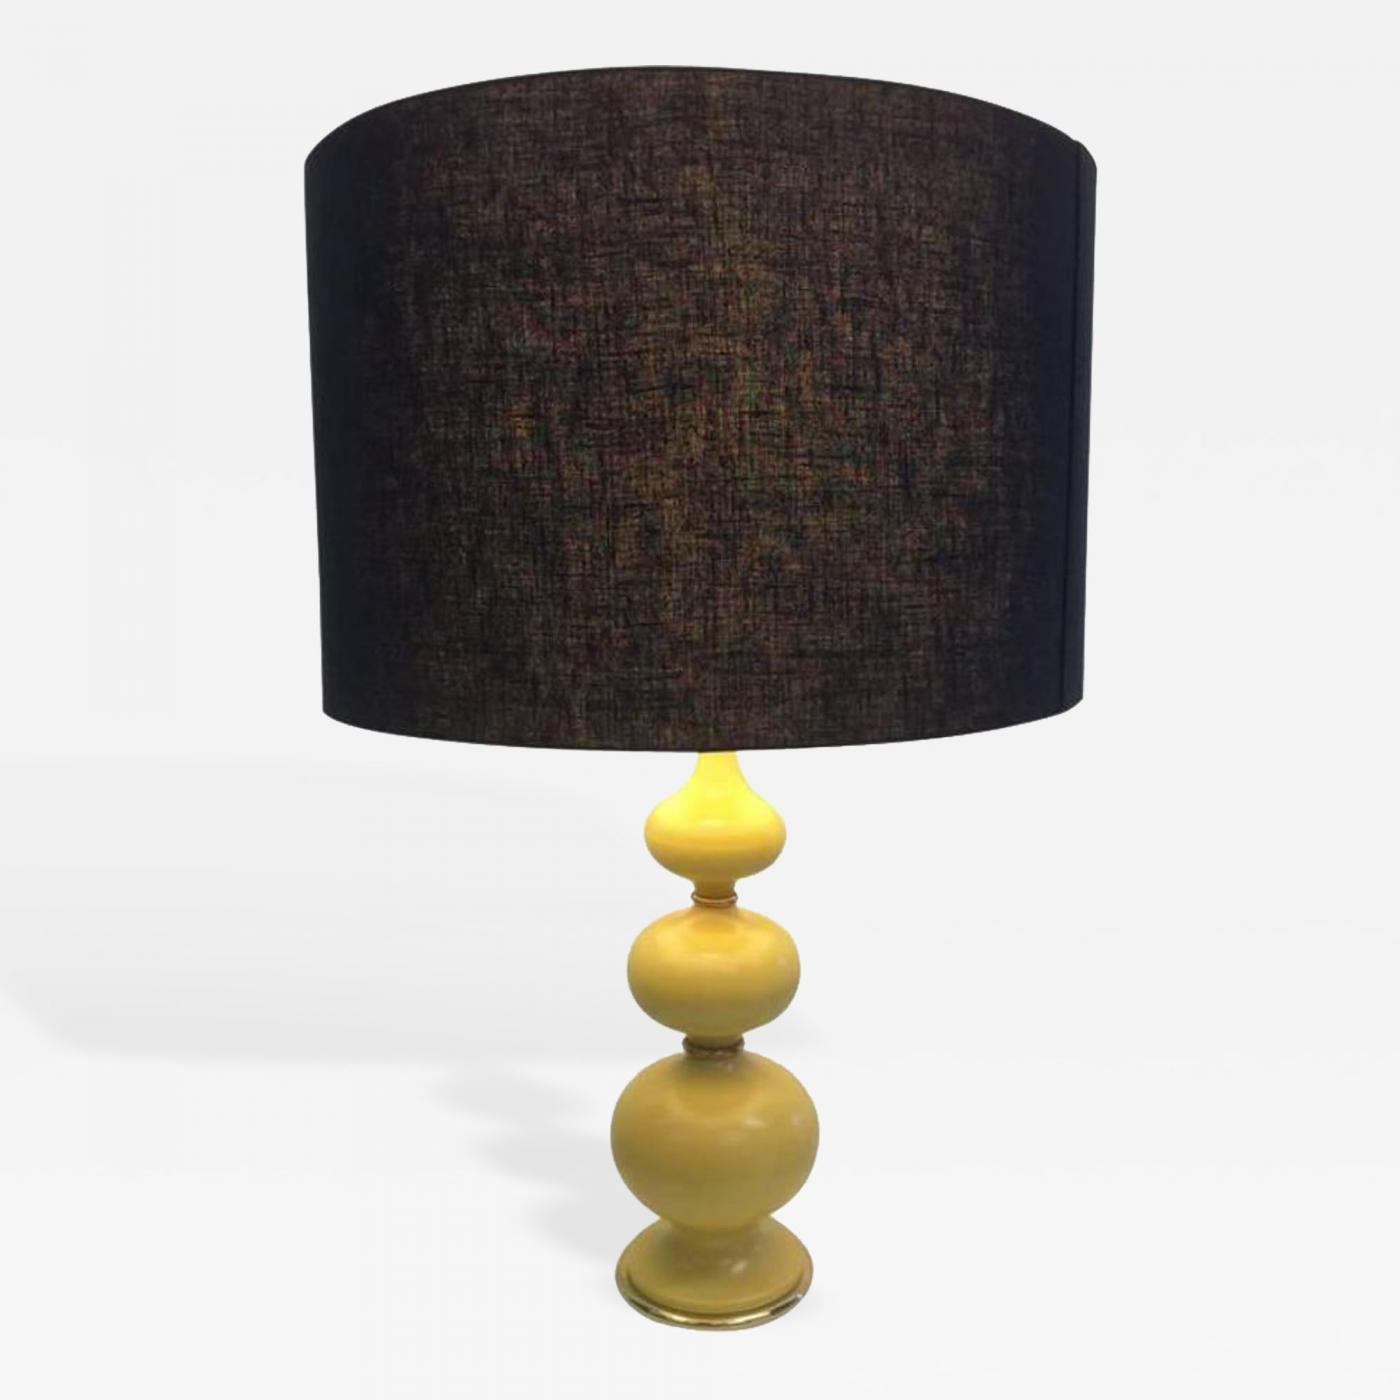 Gerald thurston 1950s atomic lamp by gerald thurston for lightolier listings furniture lighting table lamps gerald thurston geotapseo Image collections